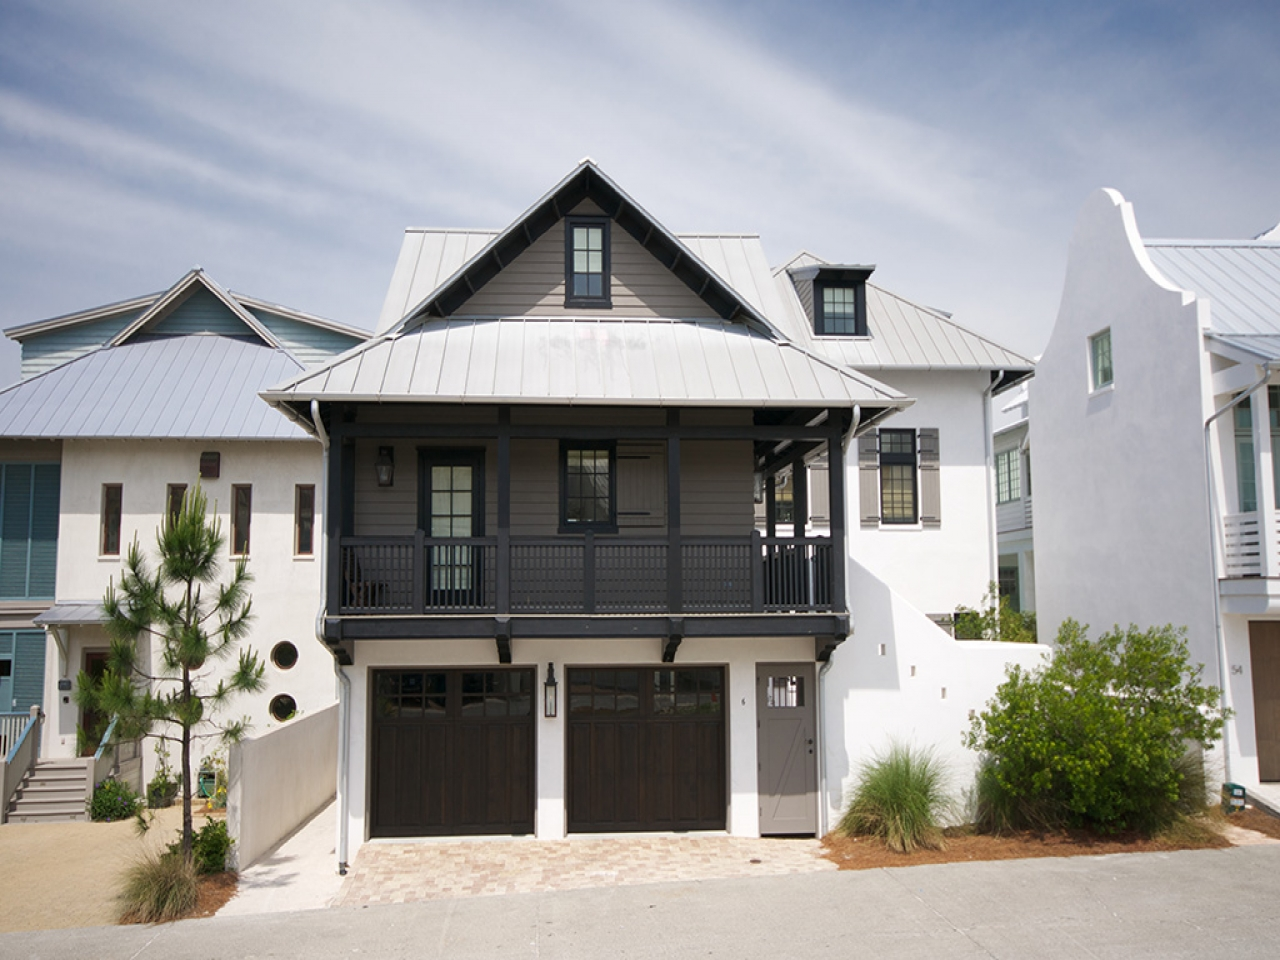 Hartsfield carriage house rosemary beach carriage house Rental house plans